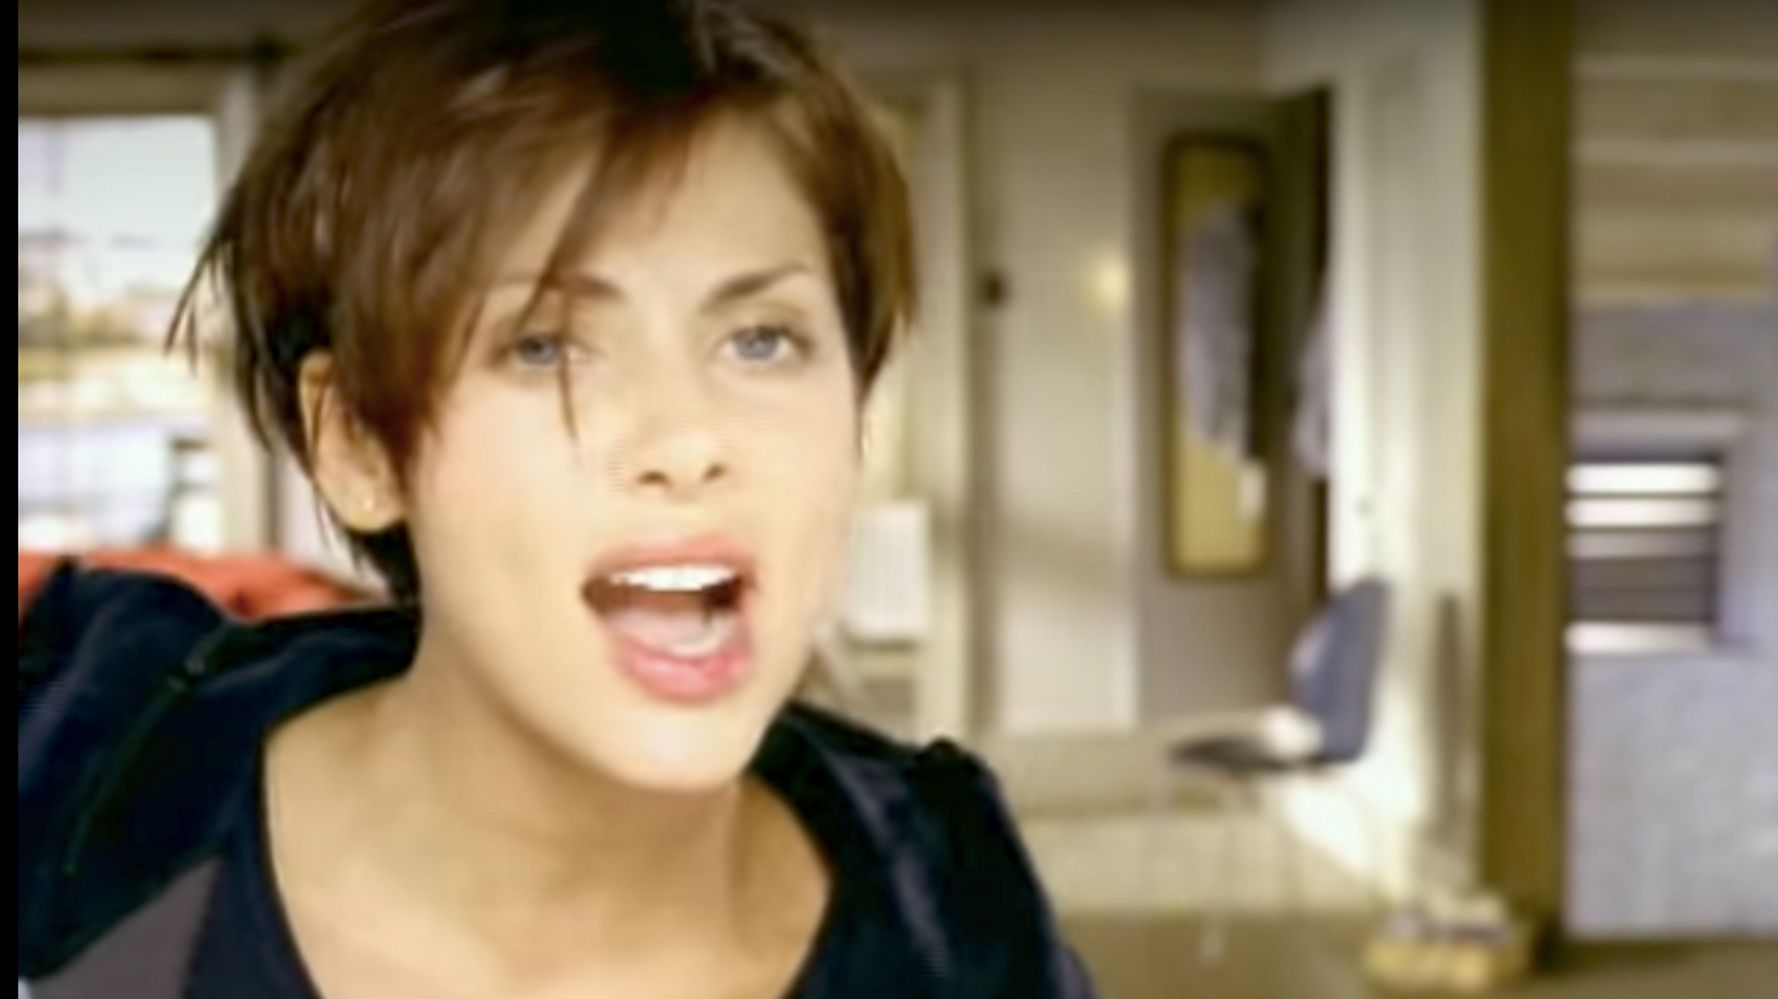 Apparently 'Torn' By Natalie Imbruglia Is A Cover And